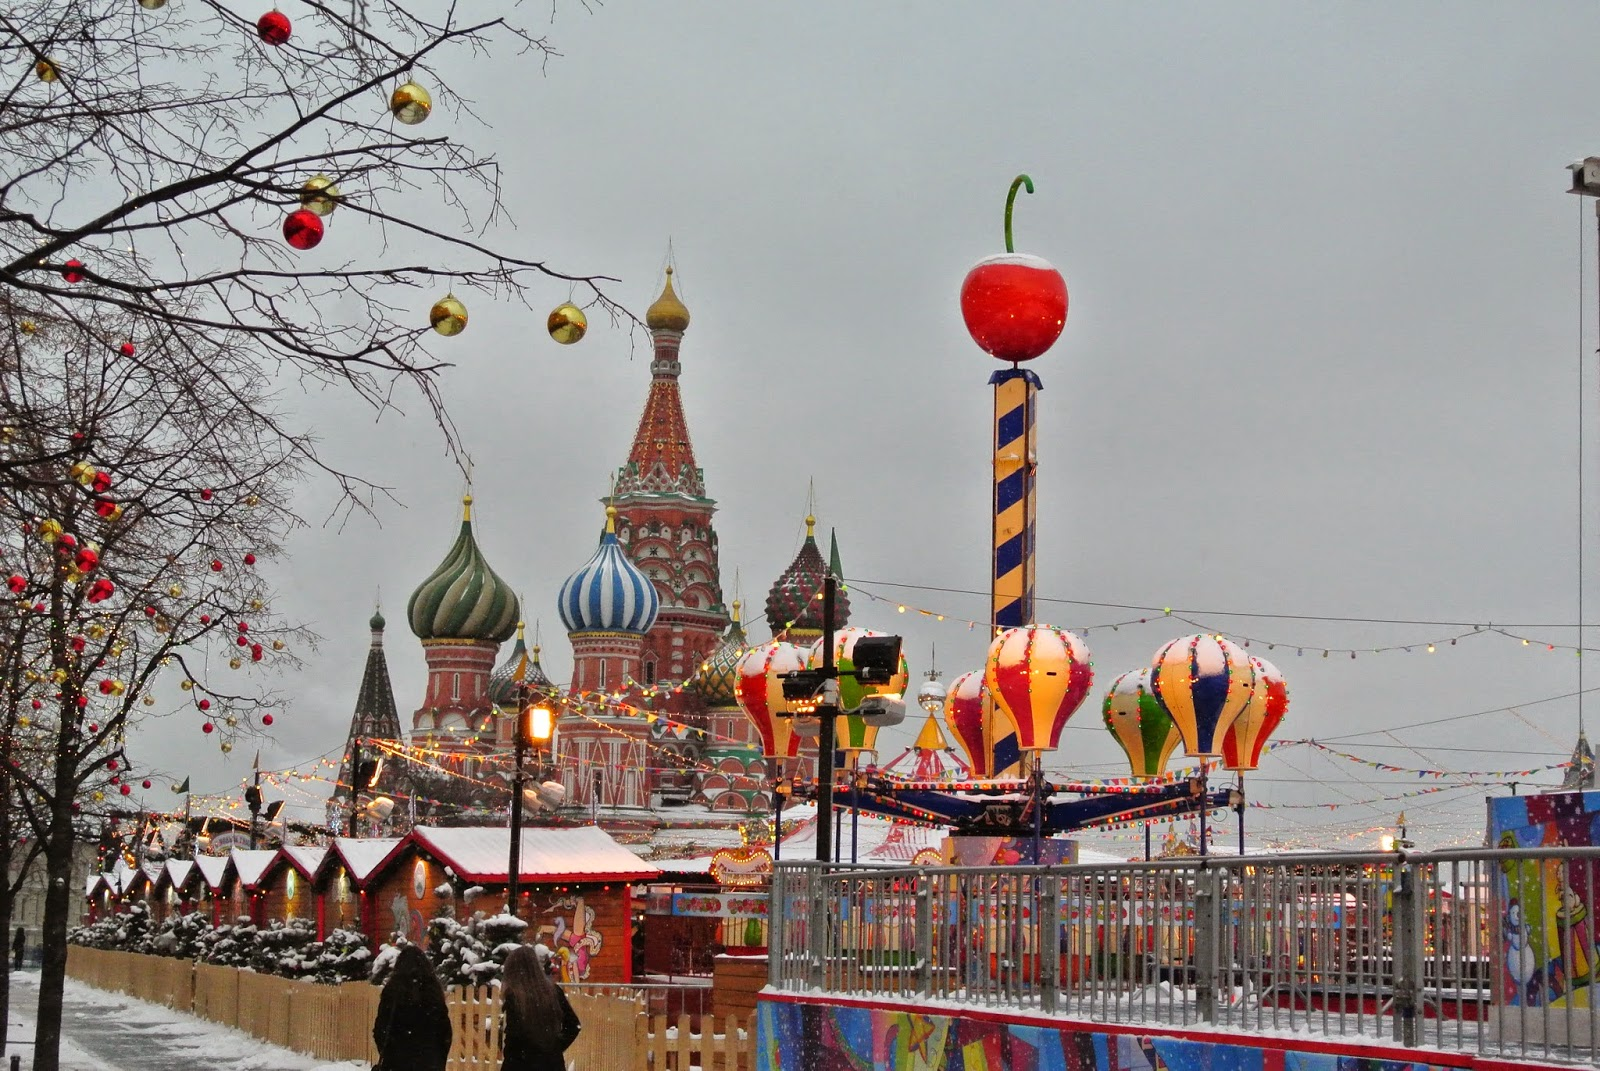 St Basil's cathedral and a merry-go-round at the Christmas marker, Red Square, Moscow